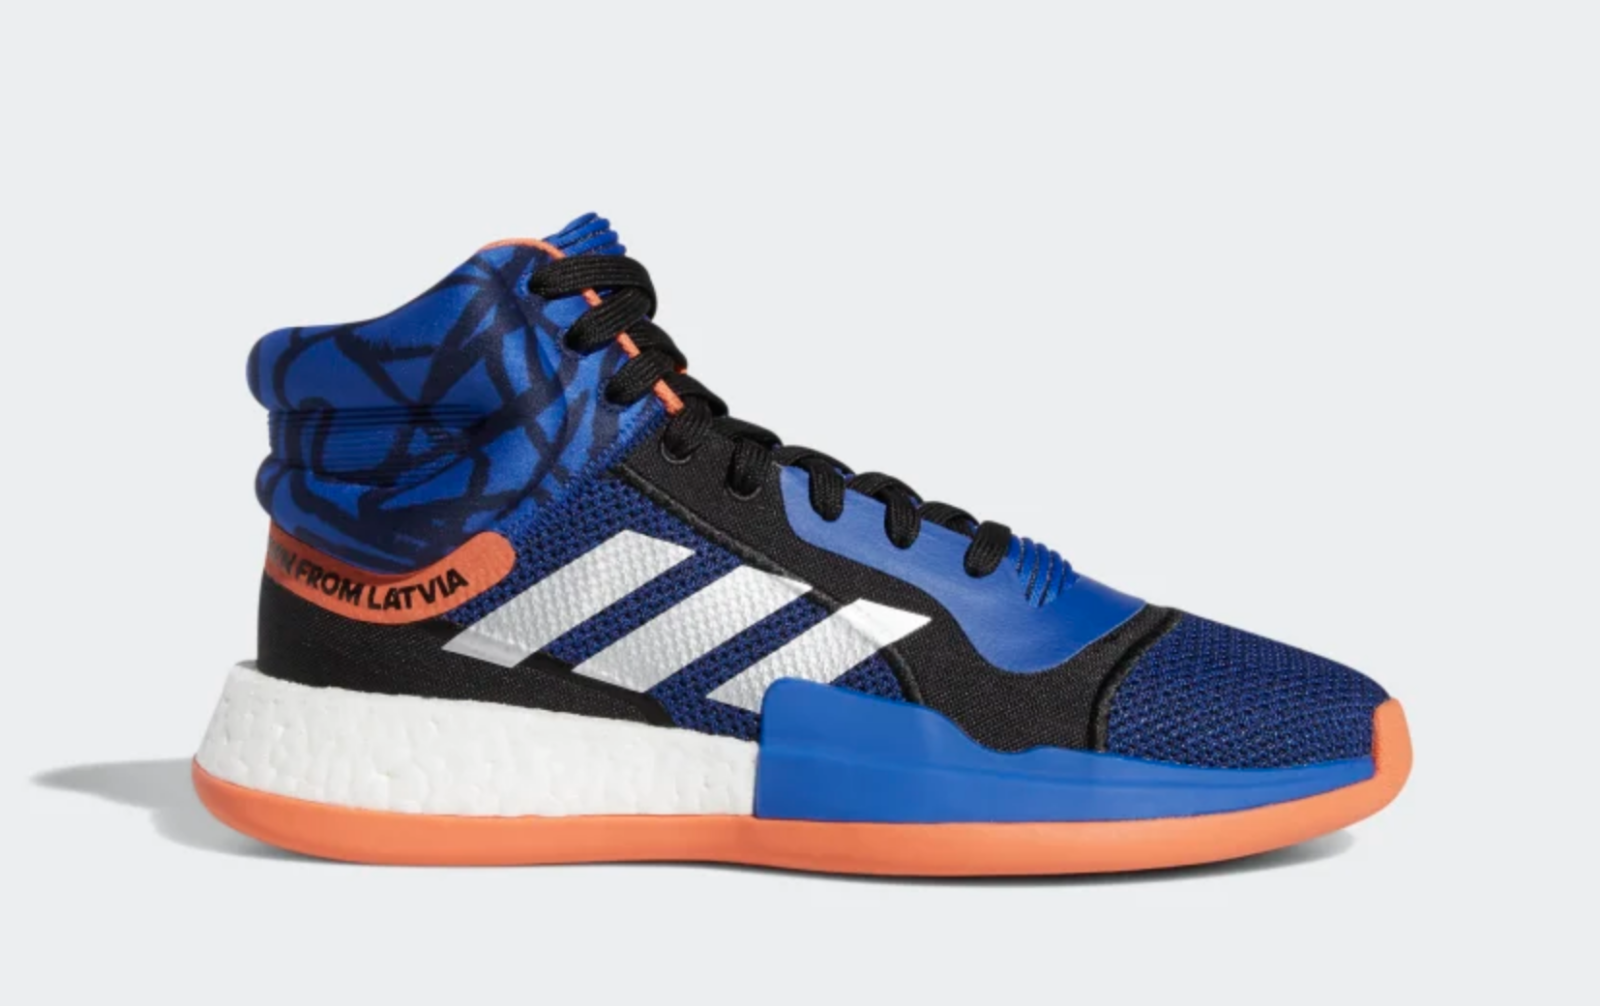 official photos 4ddbc 10d35 Adidas MARQUEE BOOST SHOES SHOES SHOES G27738 PORZINGIS bluee Black orange  New York Knicks a1 9699ea